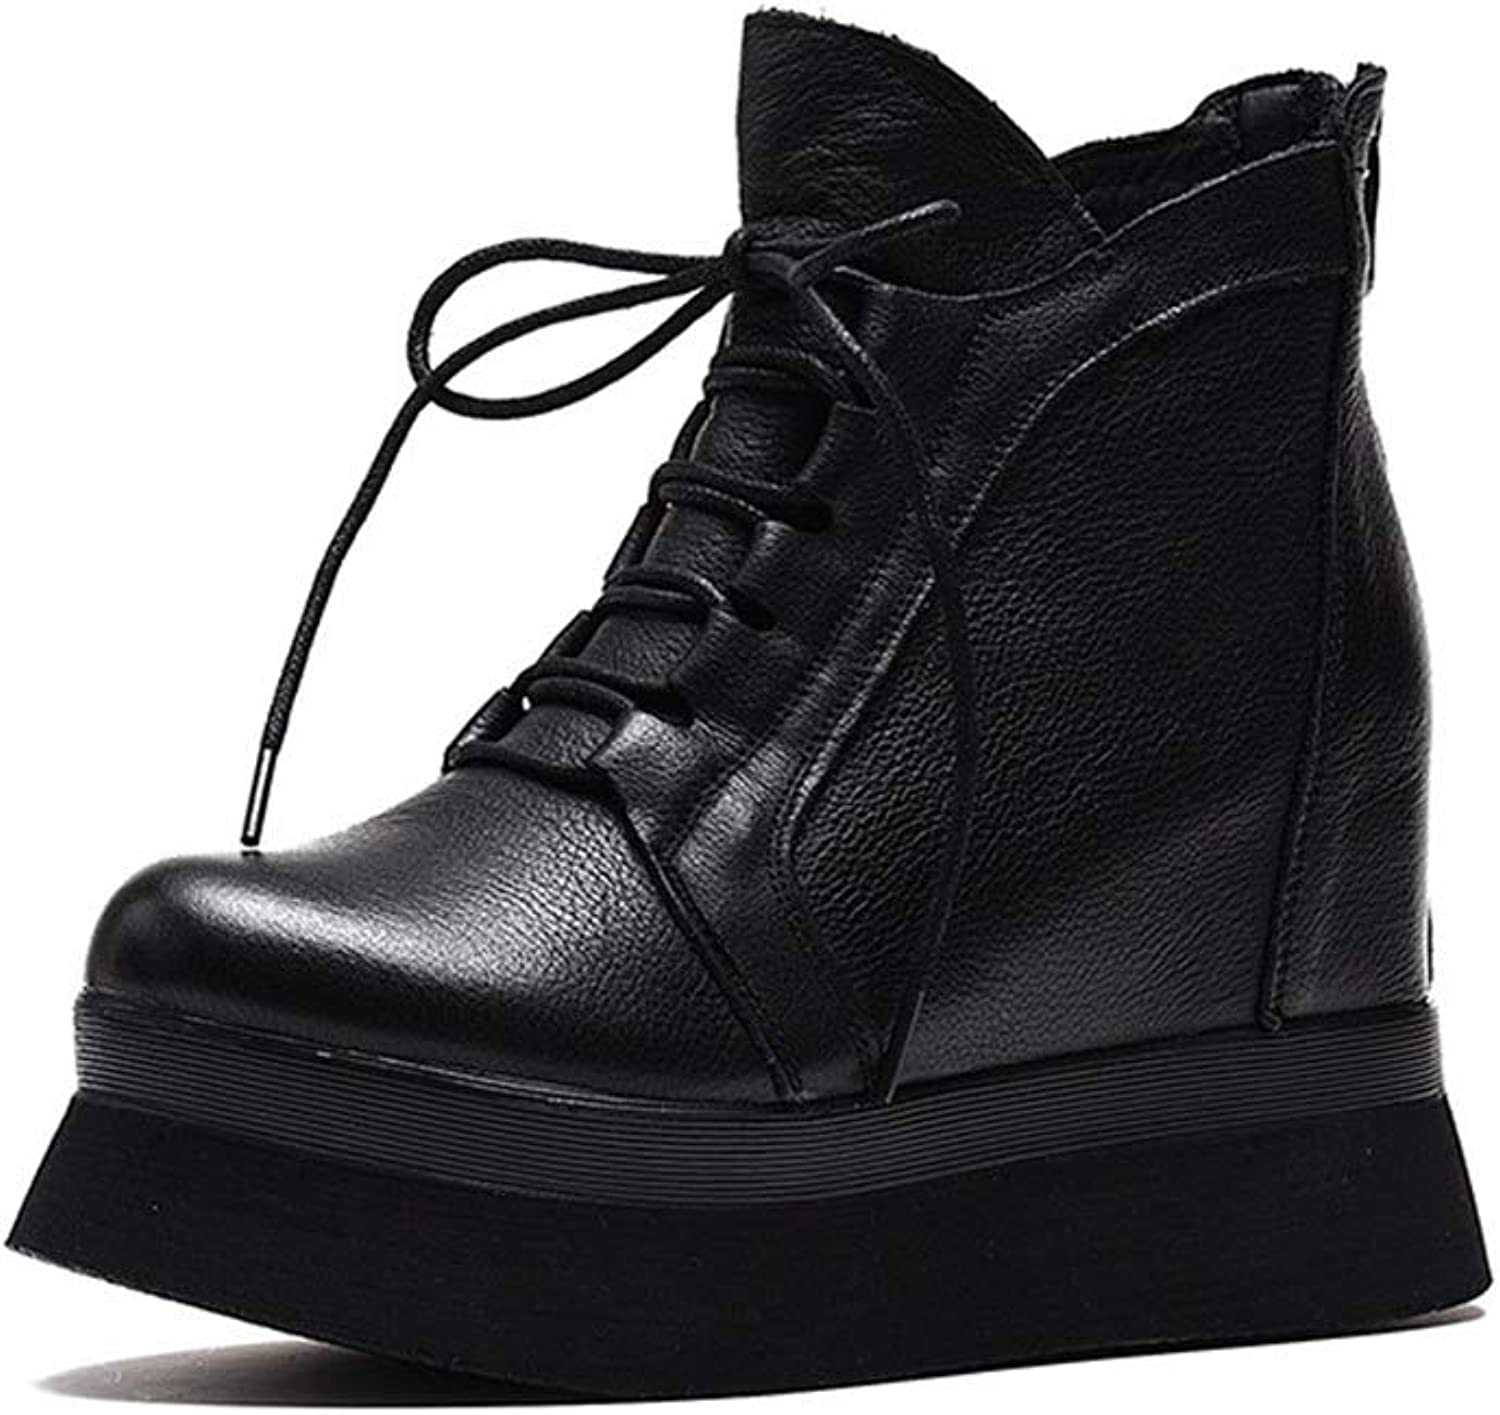 Women's Leather Boots Spring Autumn Invisible Heightening Platform Booties Wedge Lace Up Platform shoes Casual Daily Walking shoes (color   Black, Size   39)